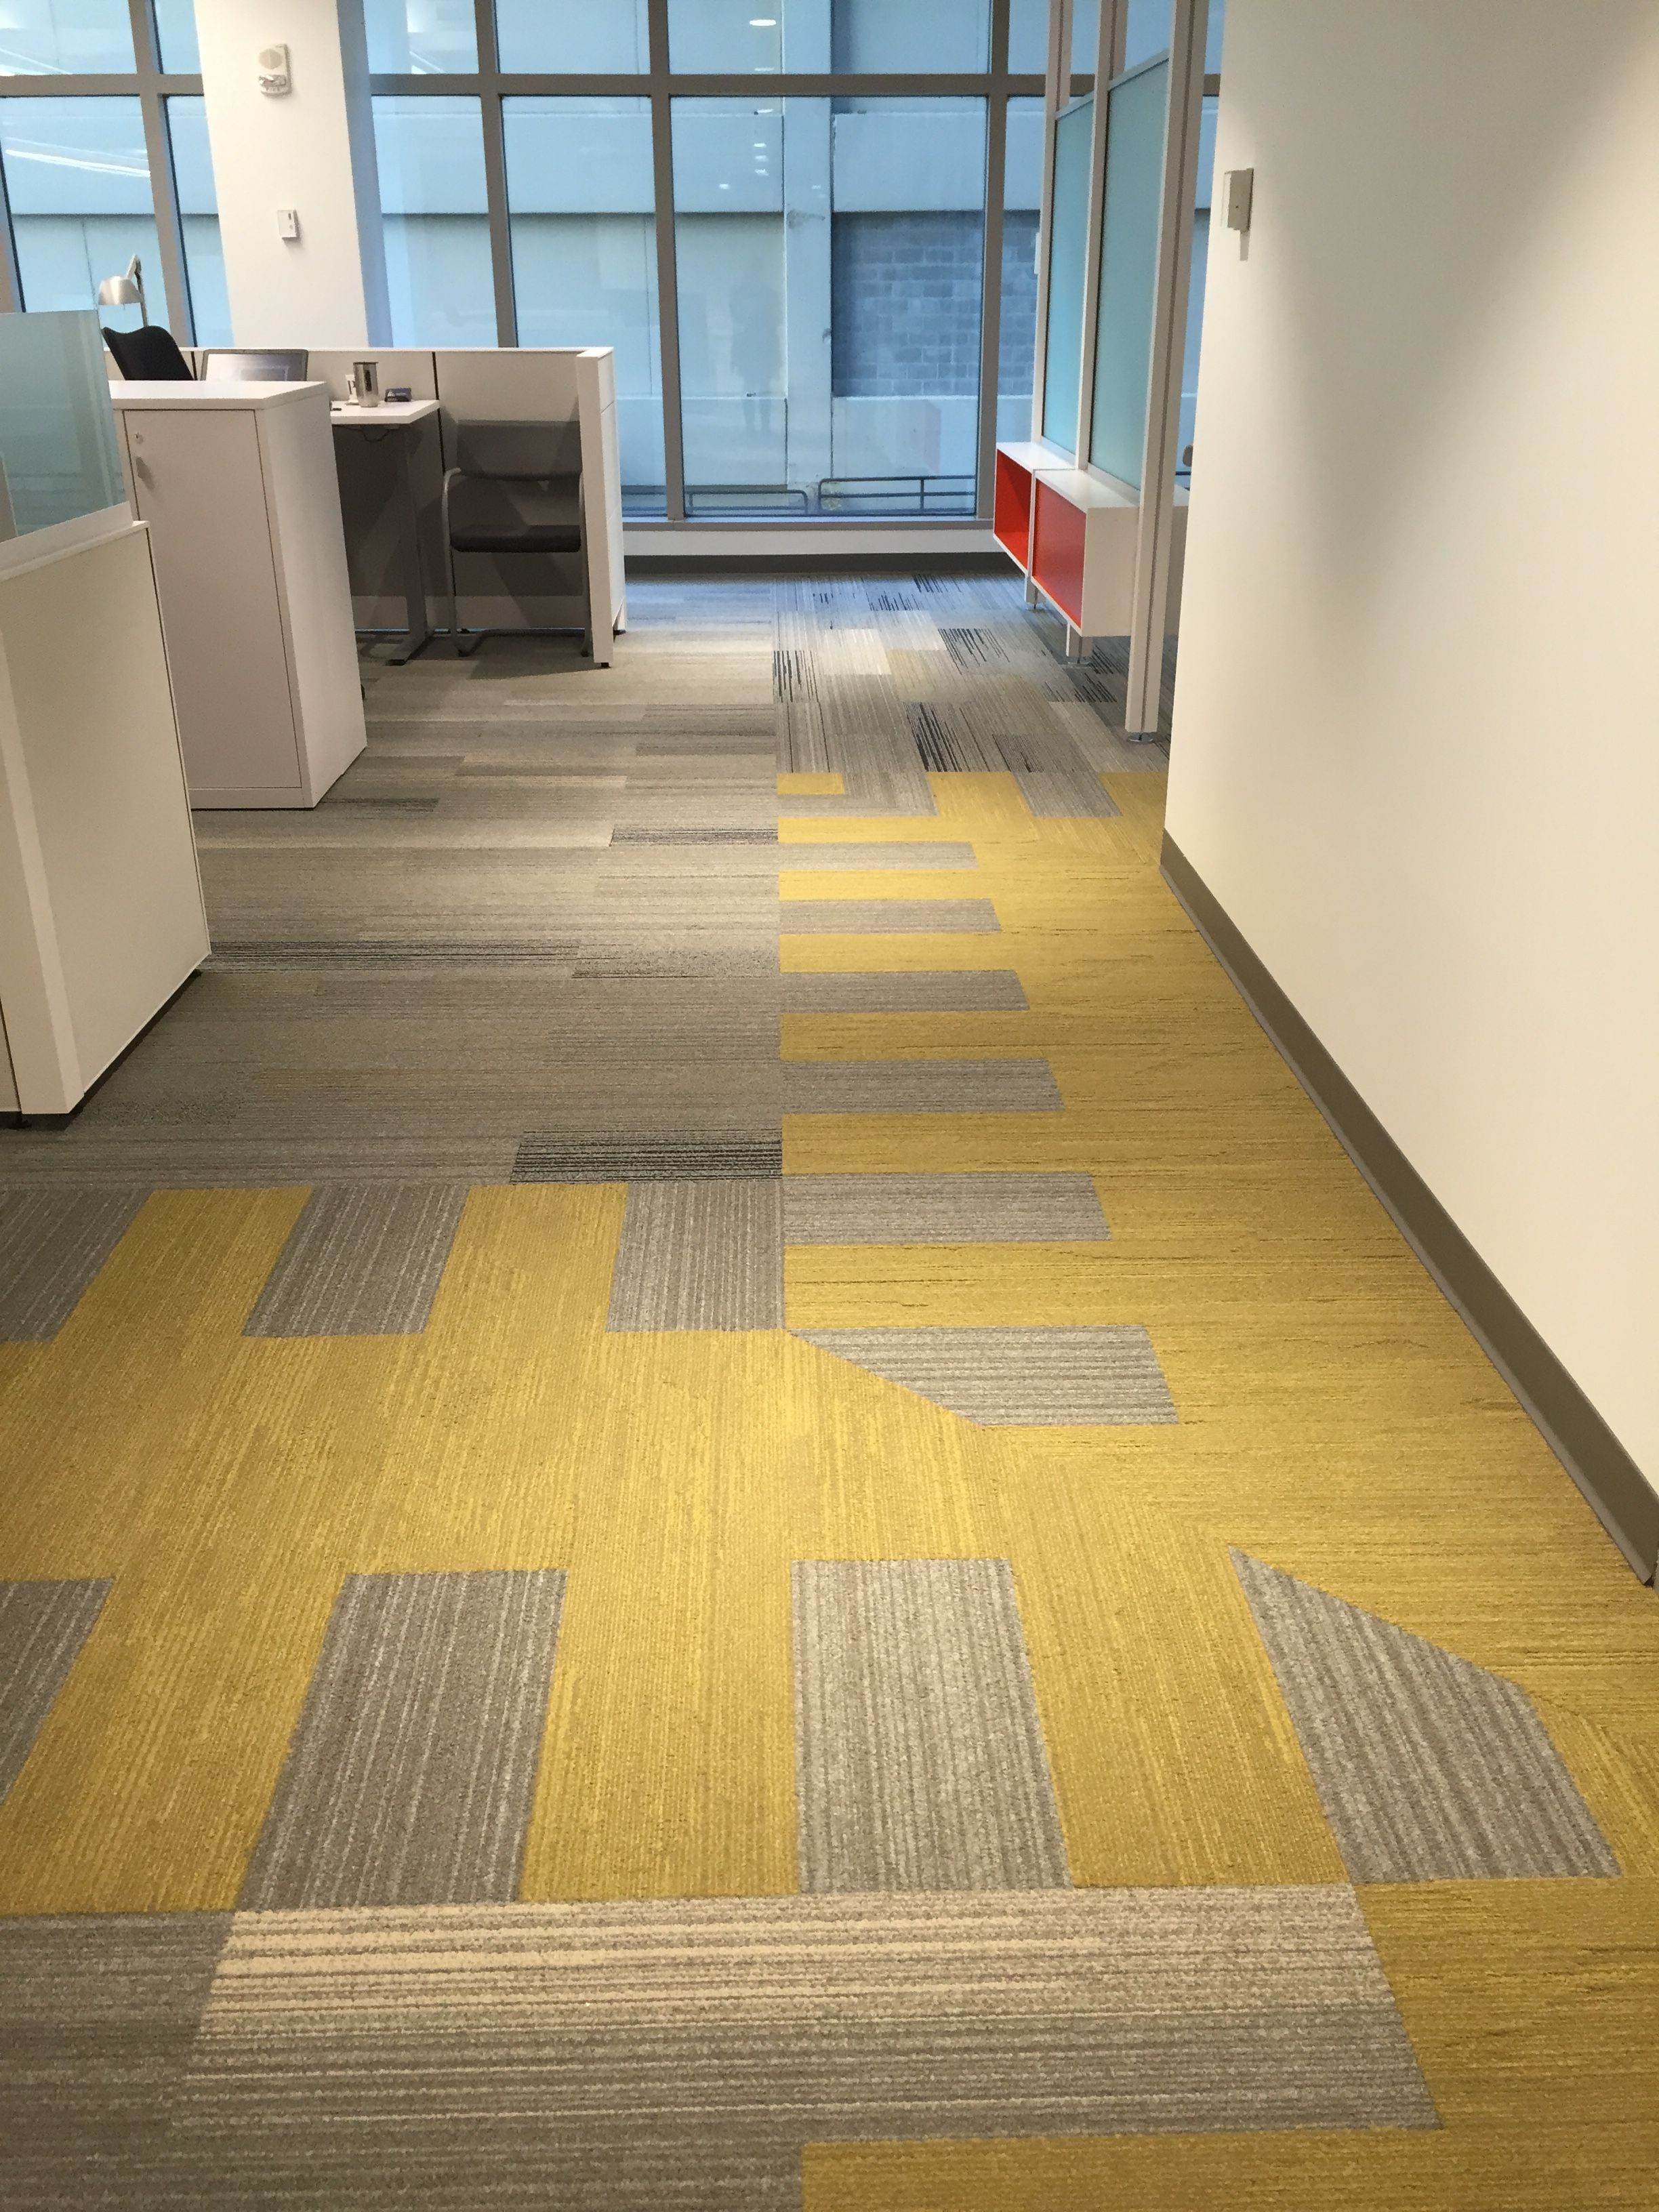 American interiors cleveland showroom all things interface pinterest carpet design office for Commercial interior design cleveland